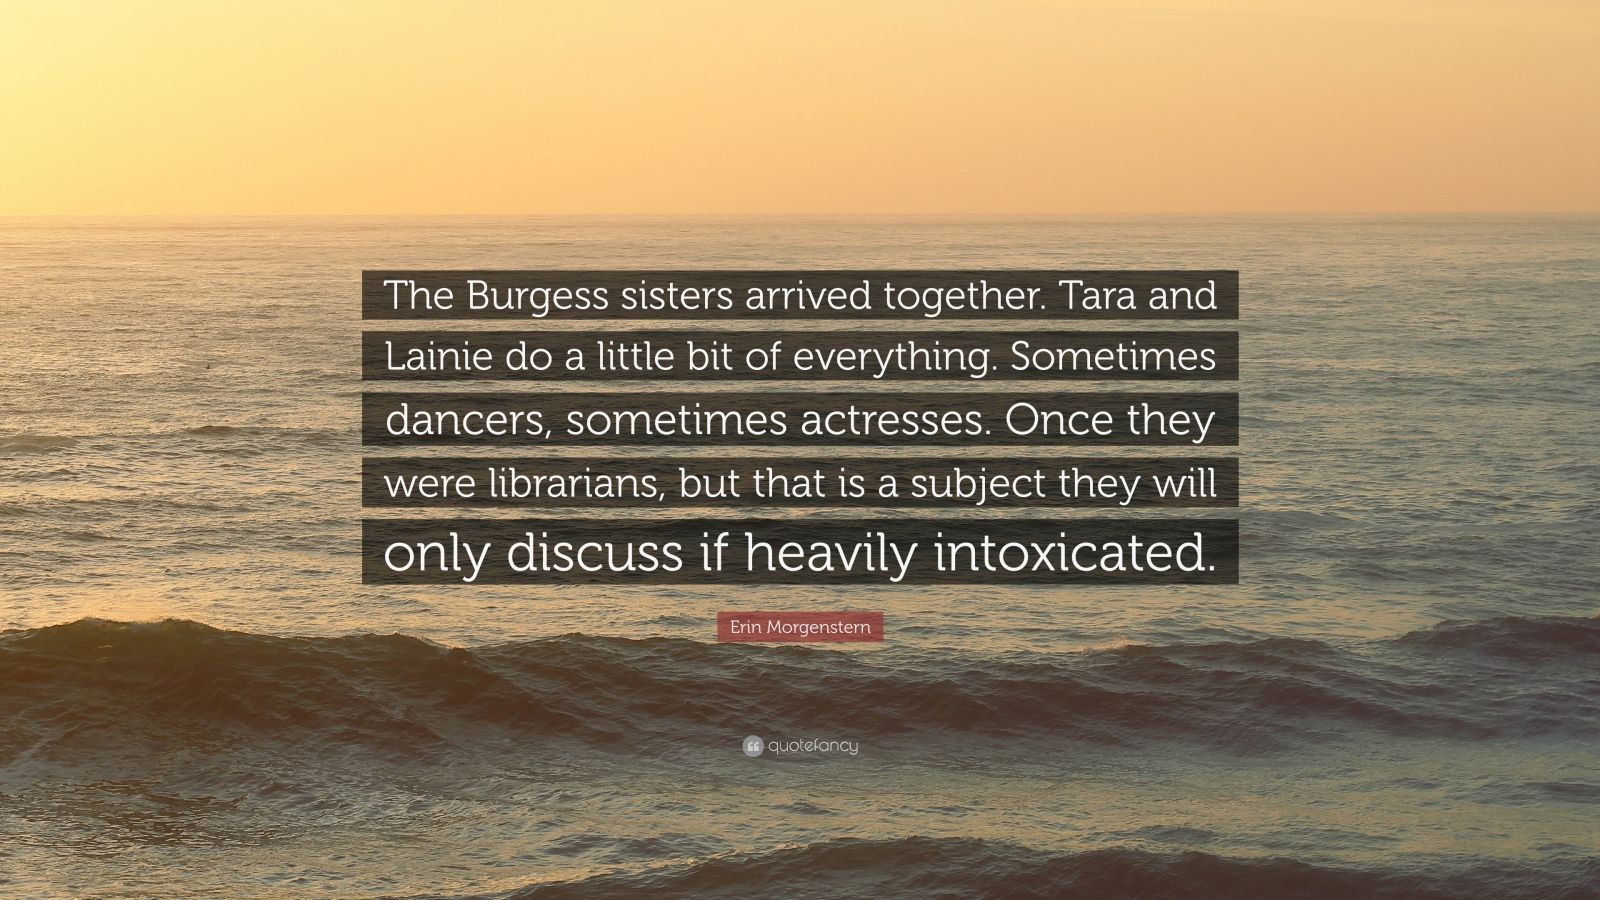 "Erin Morgenstern Quote: ""The Burgess sisters arrived together. Tara and Lainie do a little bit of everything. Sometimes dancers, sometimes actresses. Once they were librarians, but that is a subject they will only discuss if heavily intoxicated."""